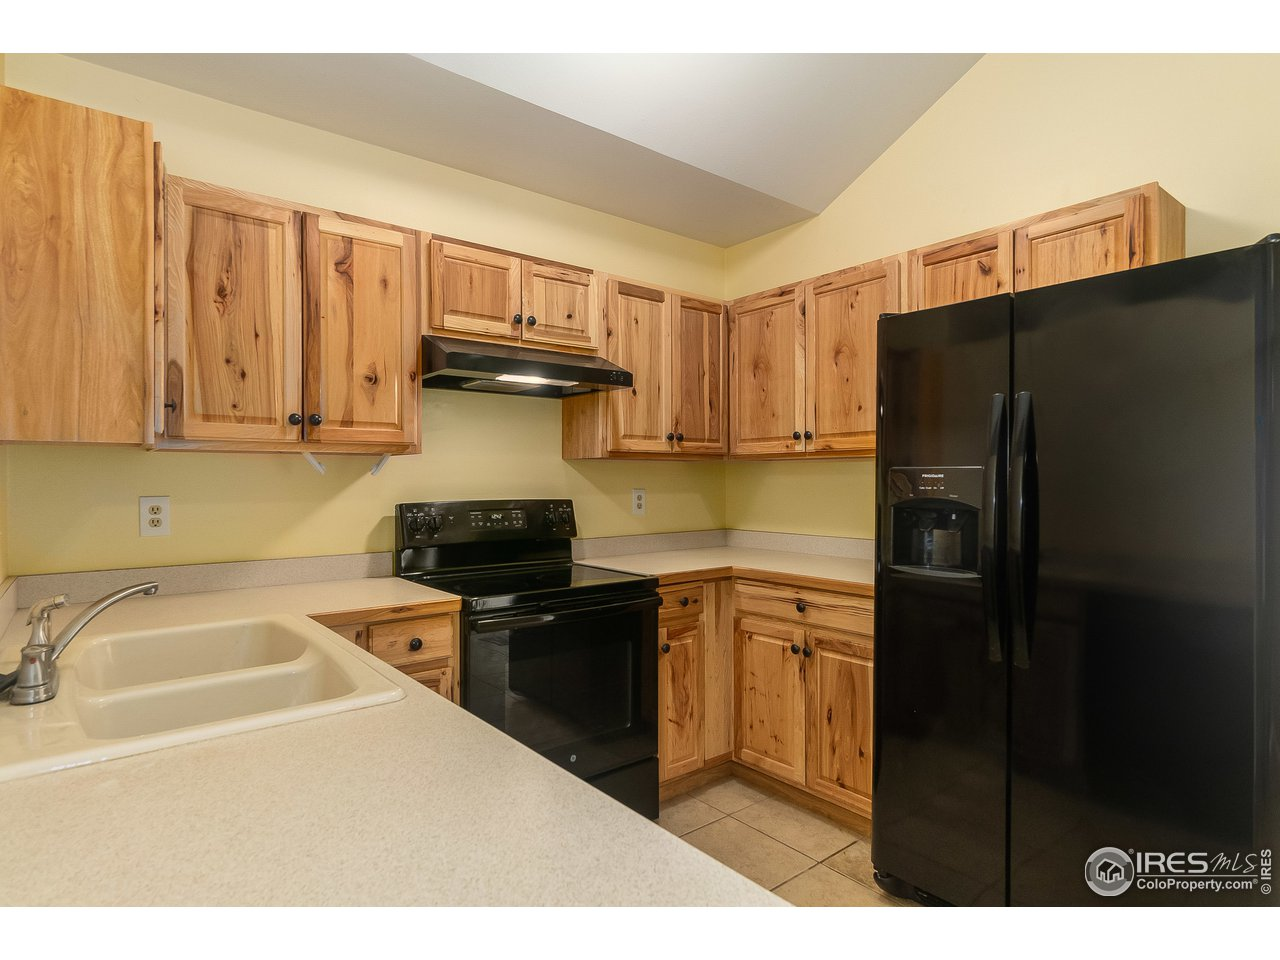 New appliances and cabinets